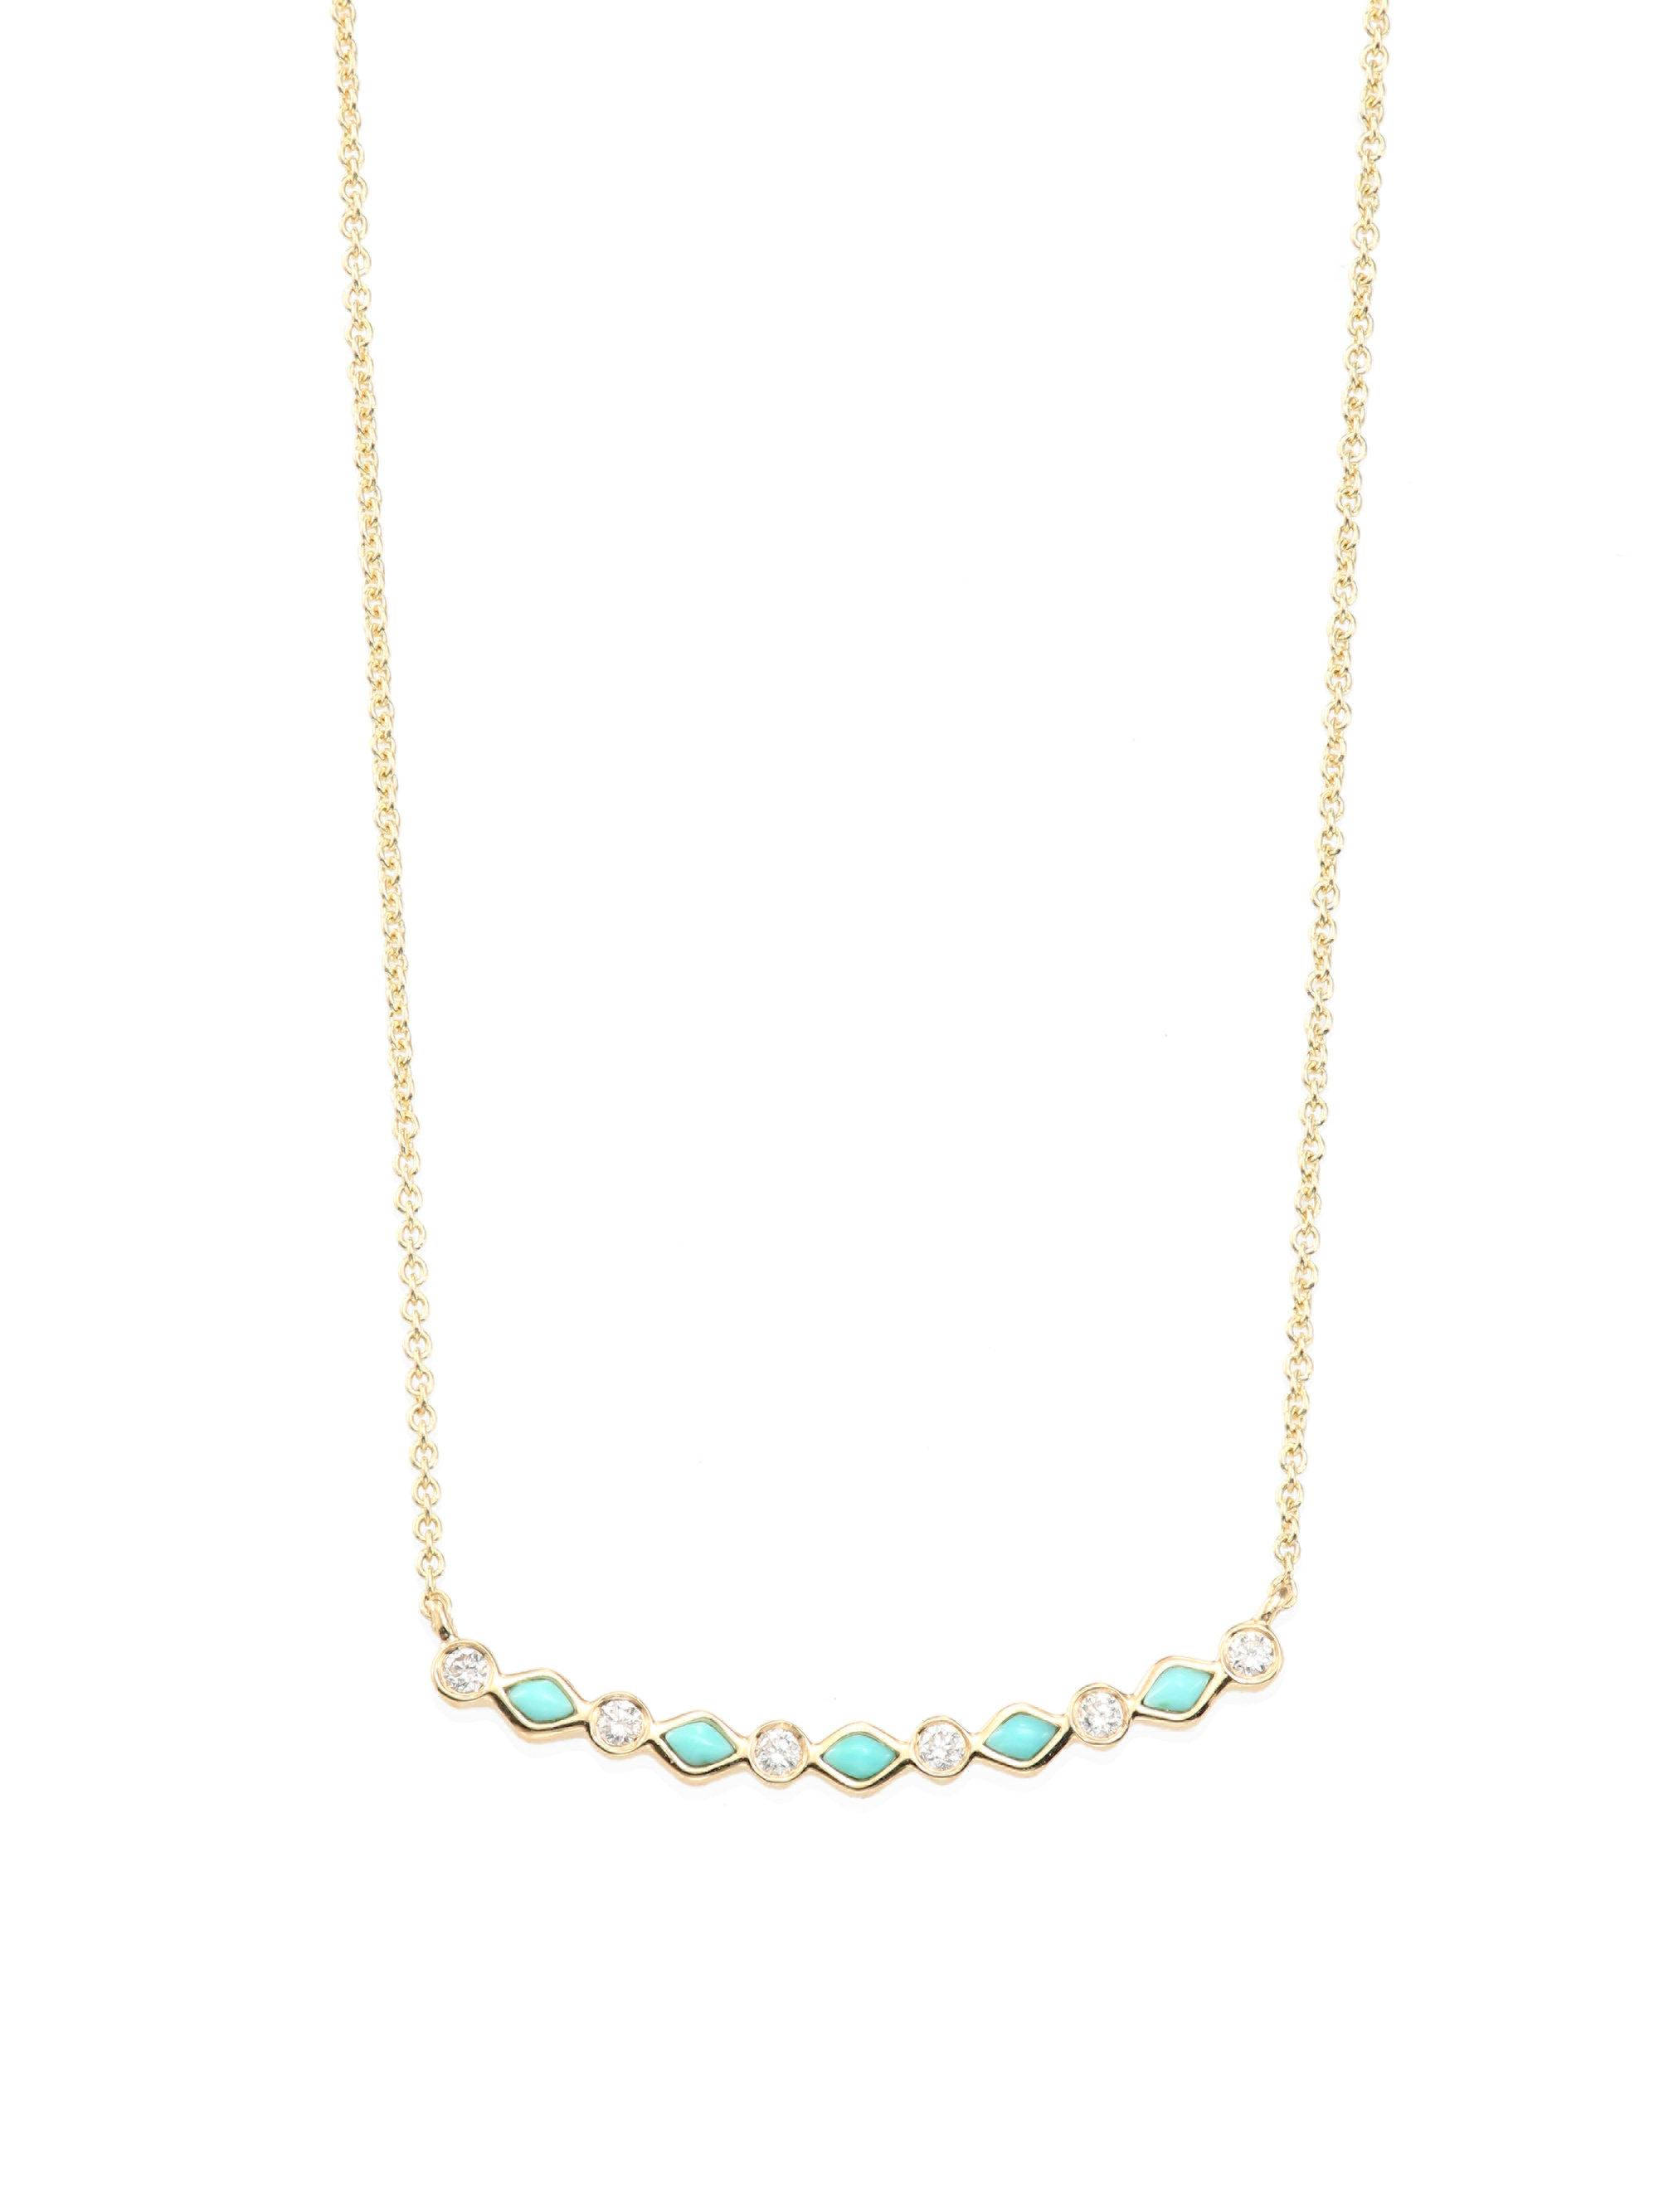 Sydney Evan Pearl Bar Necklace KJma59